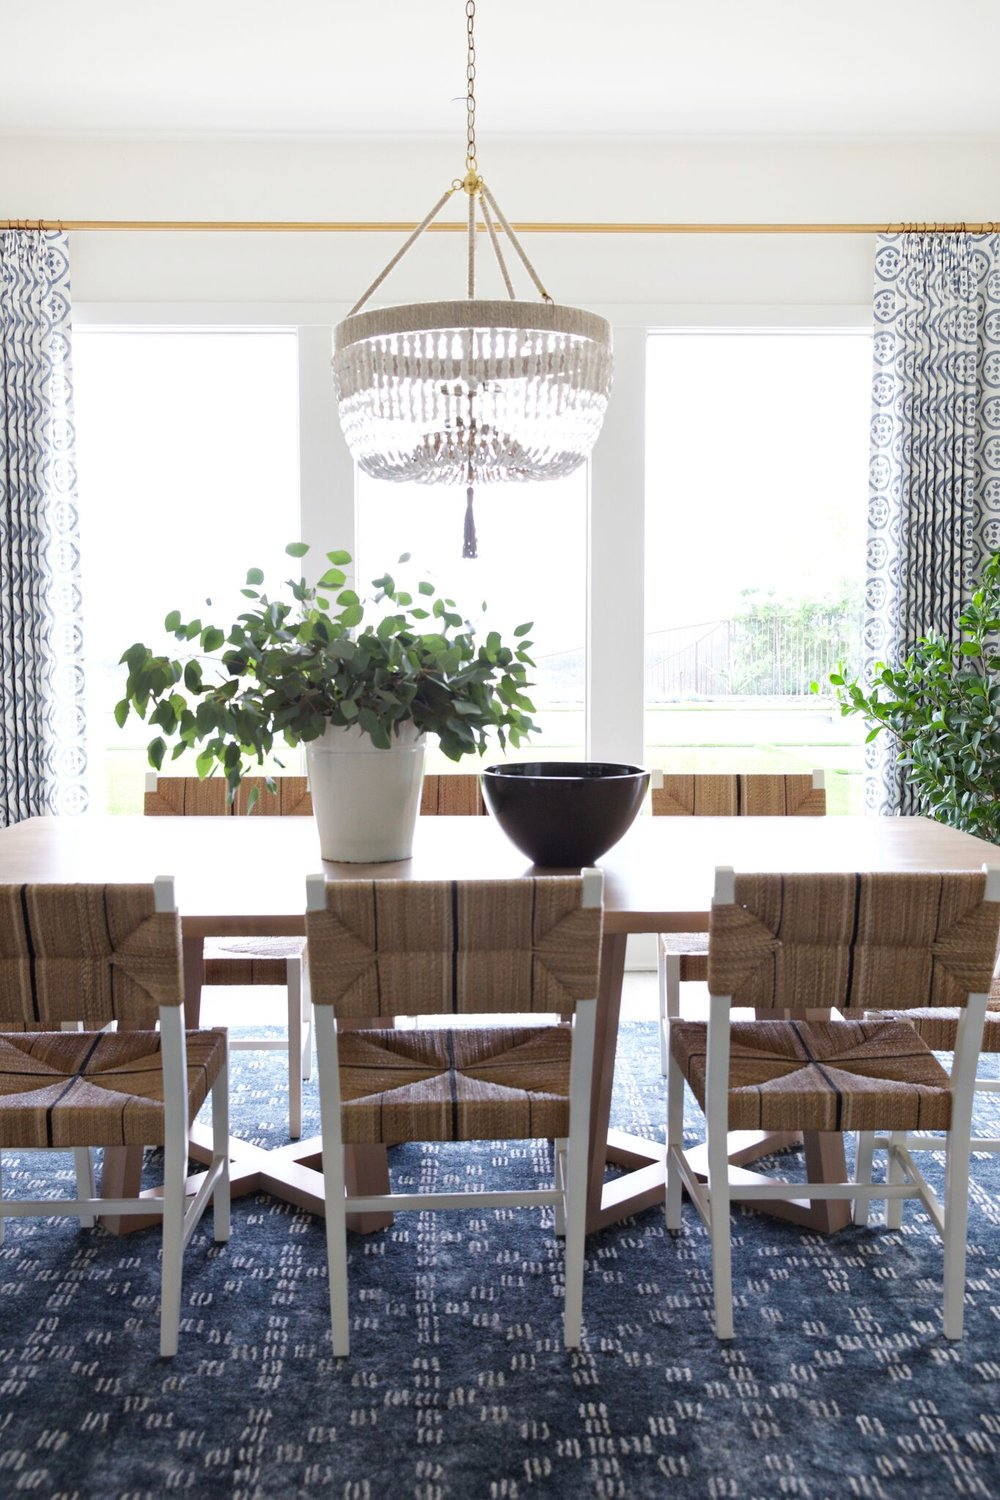 Modern dining table with golden light fixture